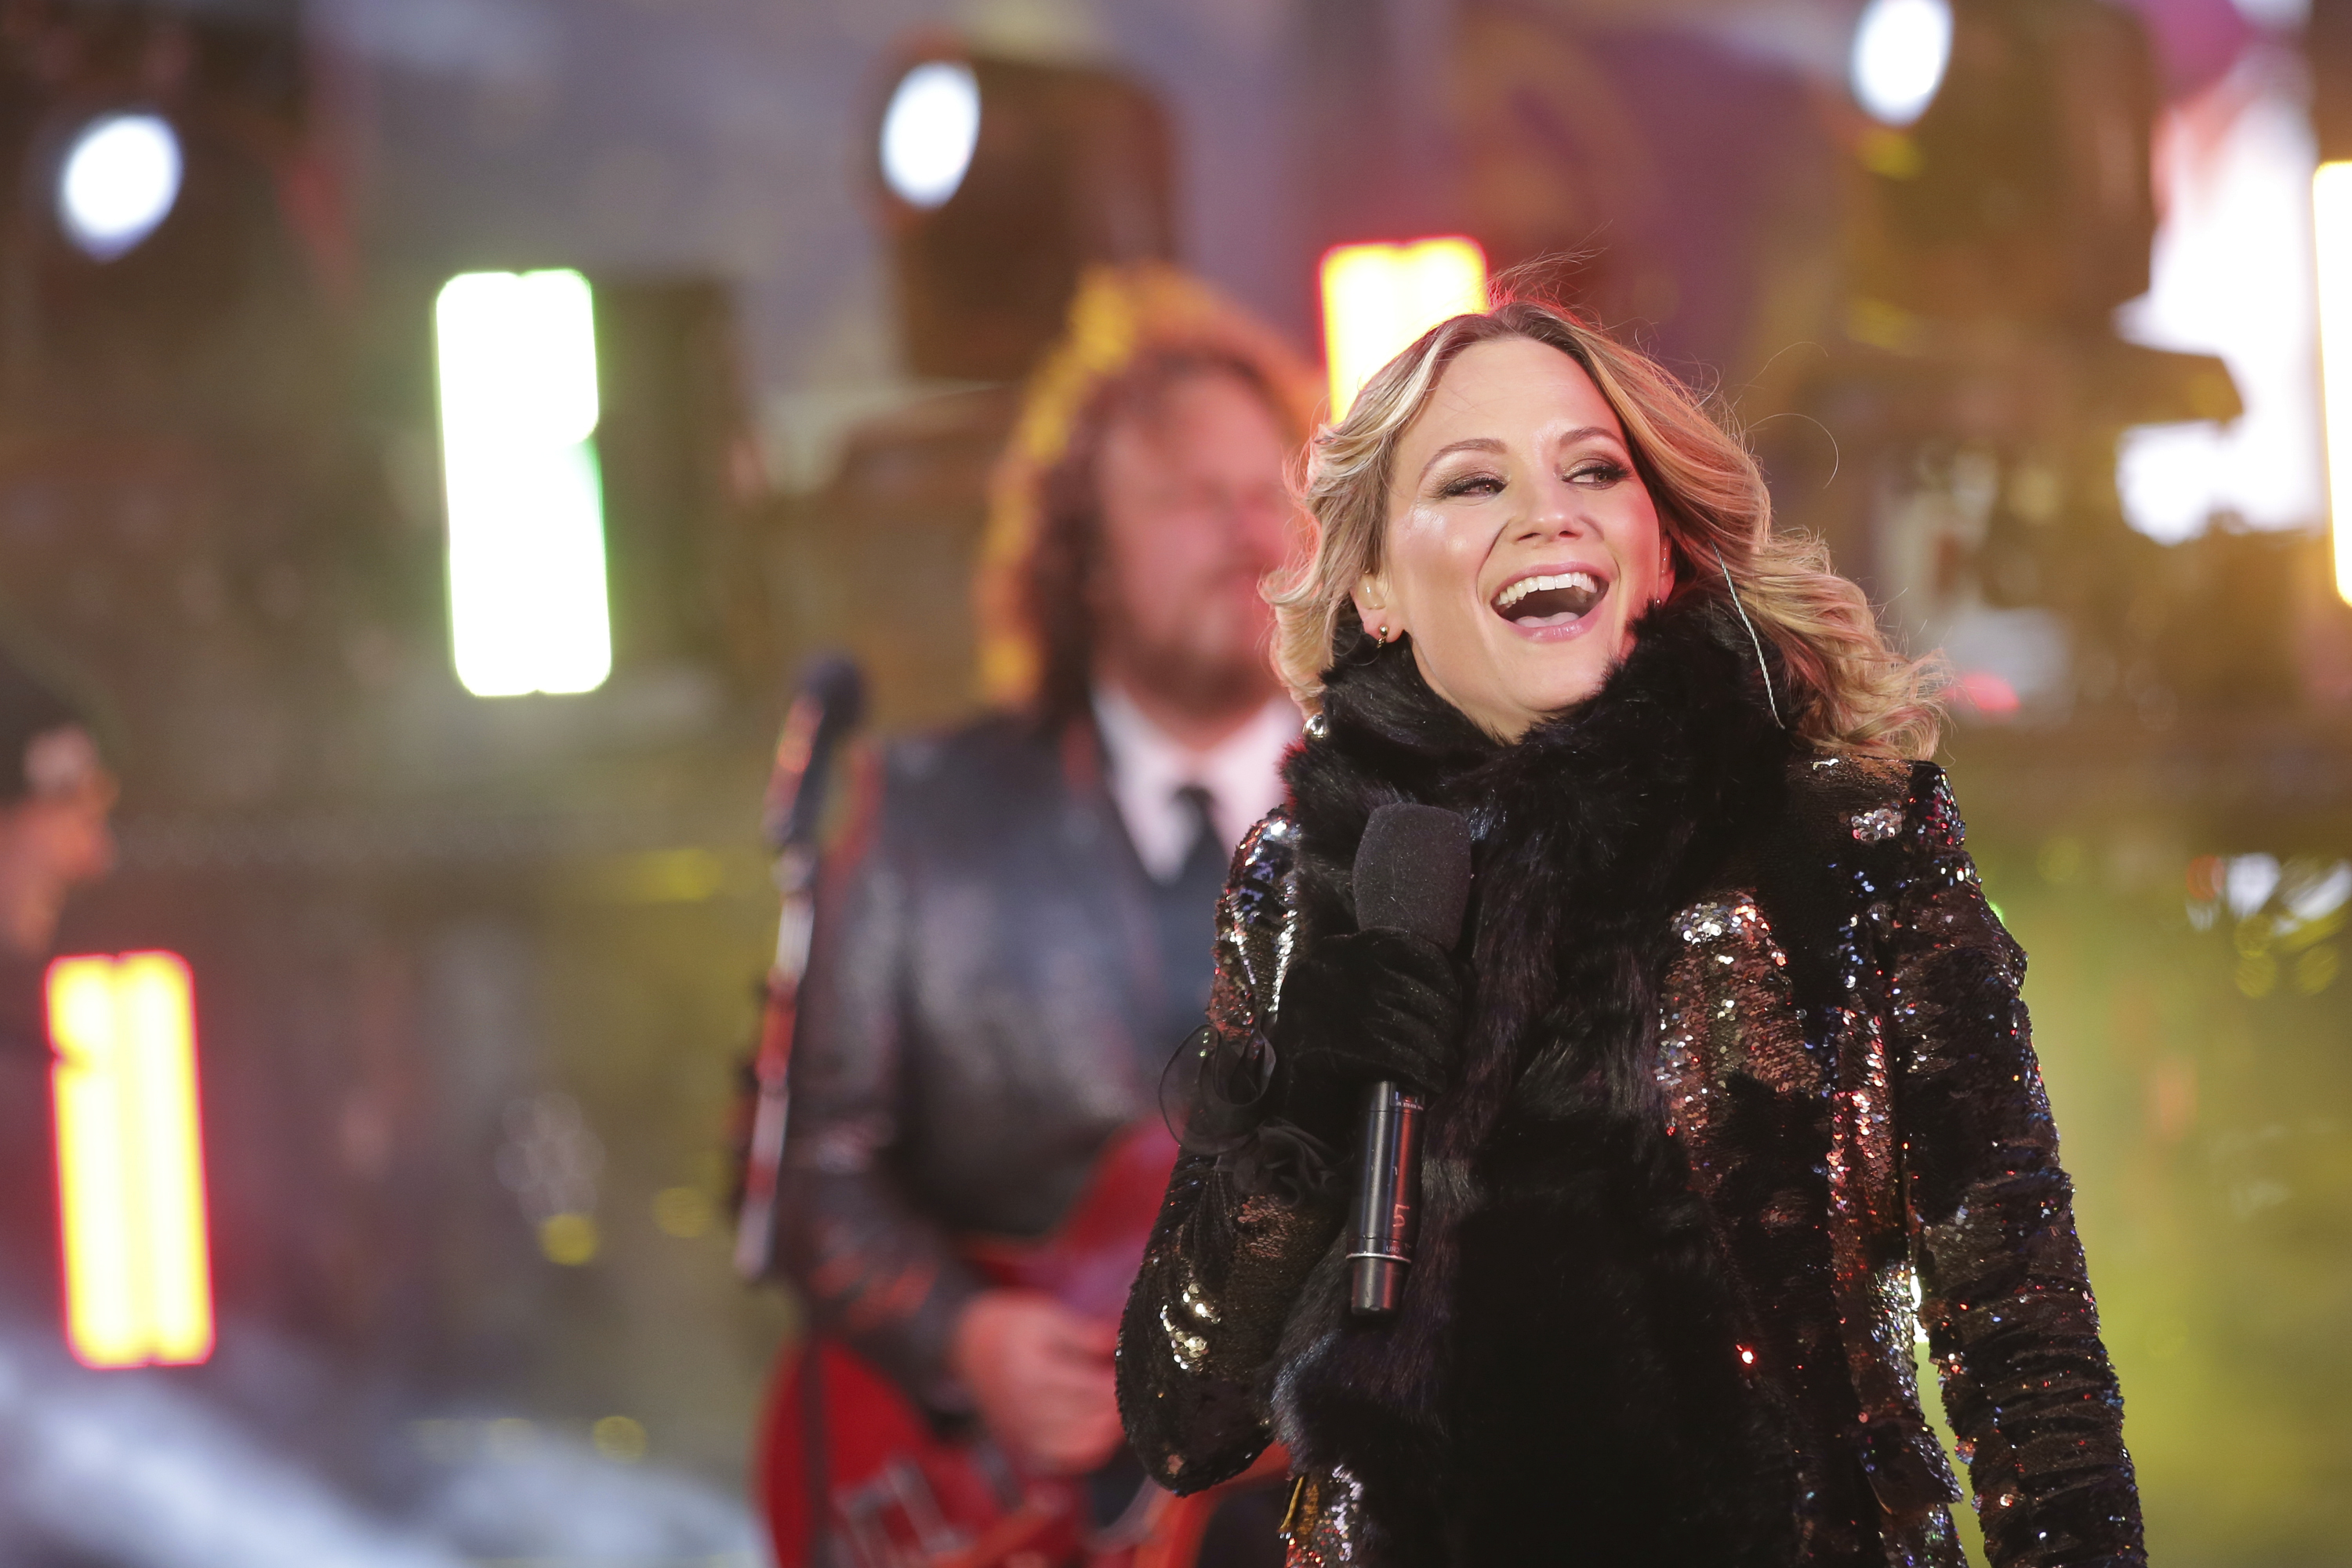 "<div class=""meta image-caption""><div class=""origin-logo origin-image ap""><span>AP</span></div><span class=""caption-text"">Jennifer Nettles, of Sugarland, performs on stage at the New Year's Eve celebration in Times Square on Sunday, Dec. 31, 2017, in New York. (Photo by Brent N. Clarke/Invision/AP) (Brent N. Clarke/Invision/AP)</span></div>"